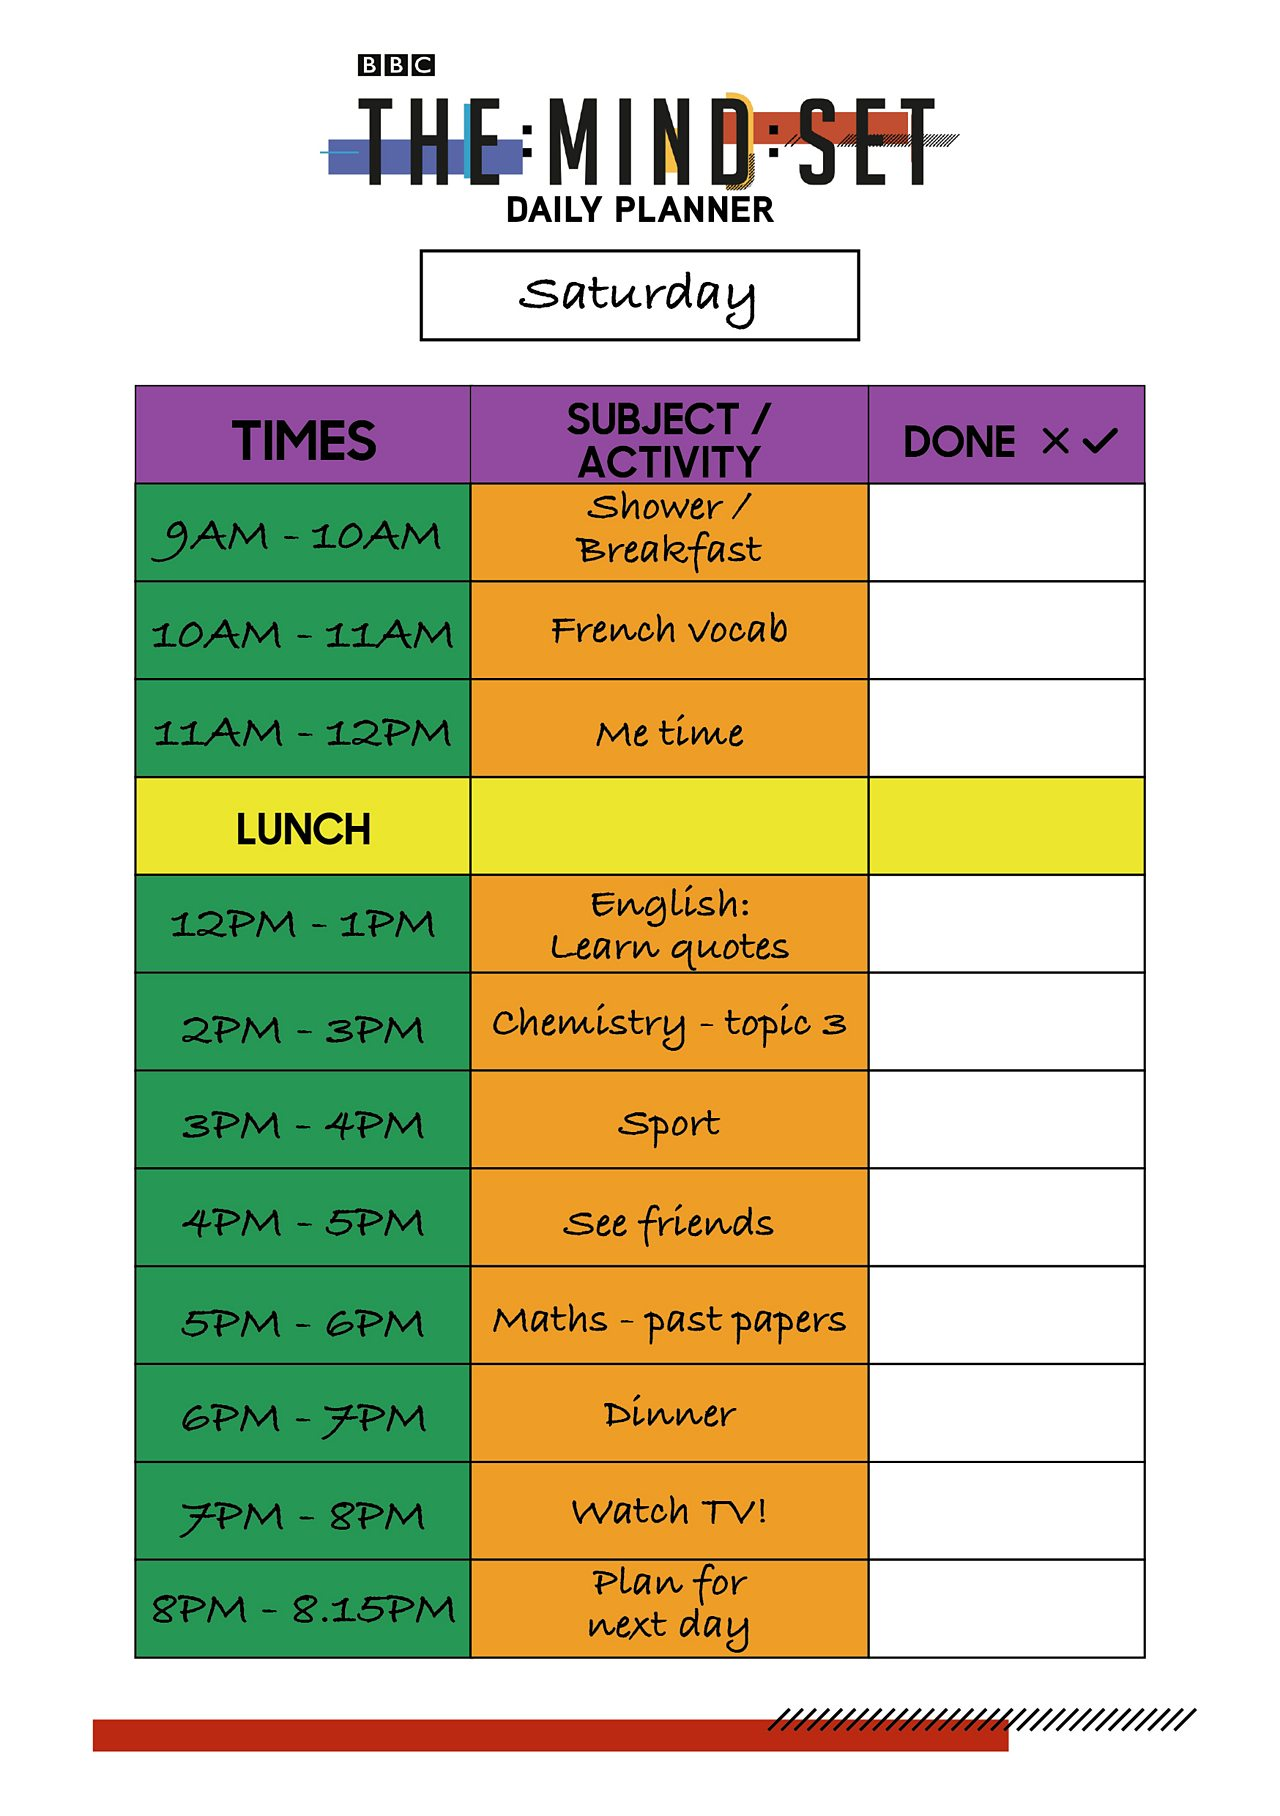 Daily work schedule from BBC The Mind Set